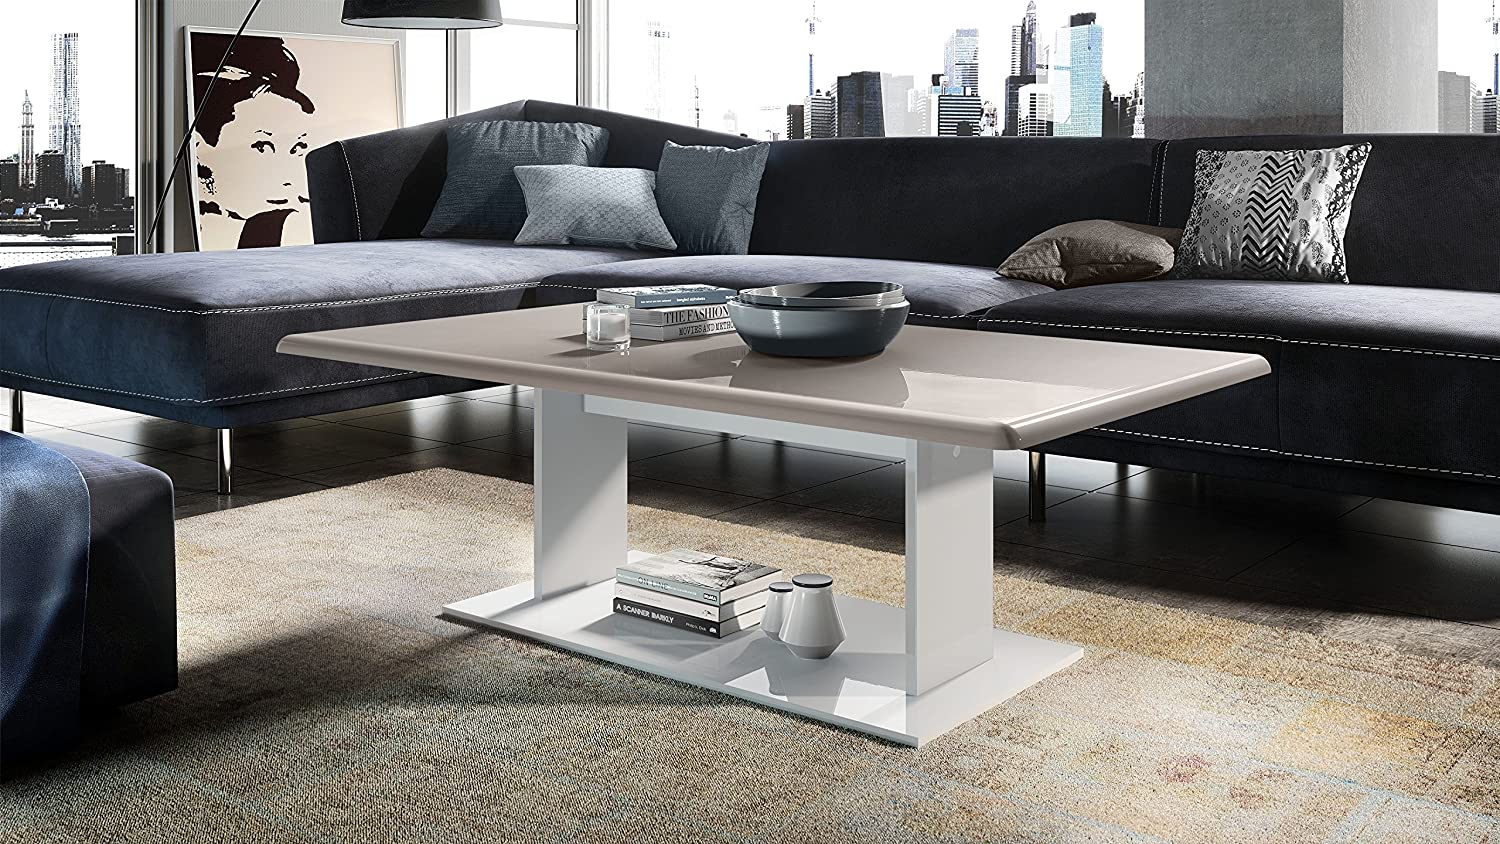 Vladon Coffee Table Side Table Mono in White with Offsets in Teal High Gloss Top in Sand Grey High Gloss